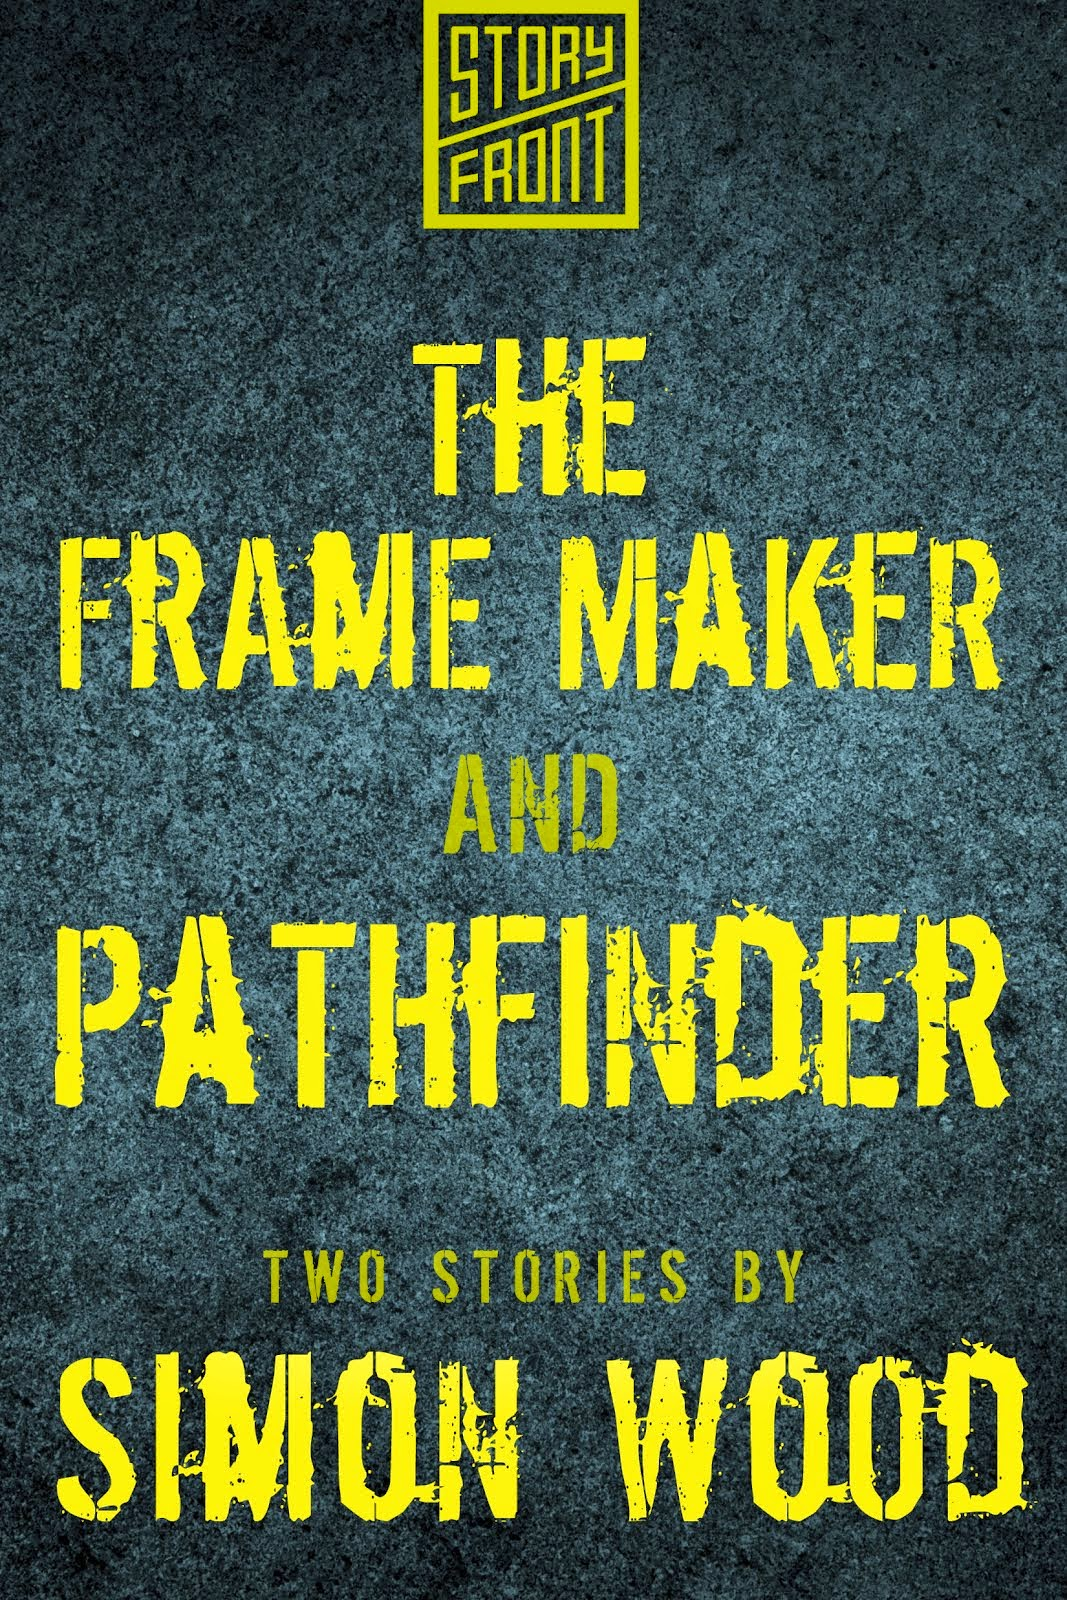 THE FRAME MAKER & PATHFINDER